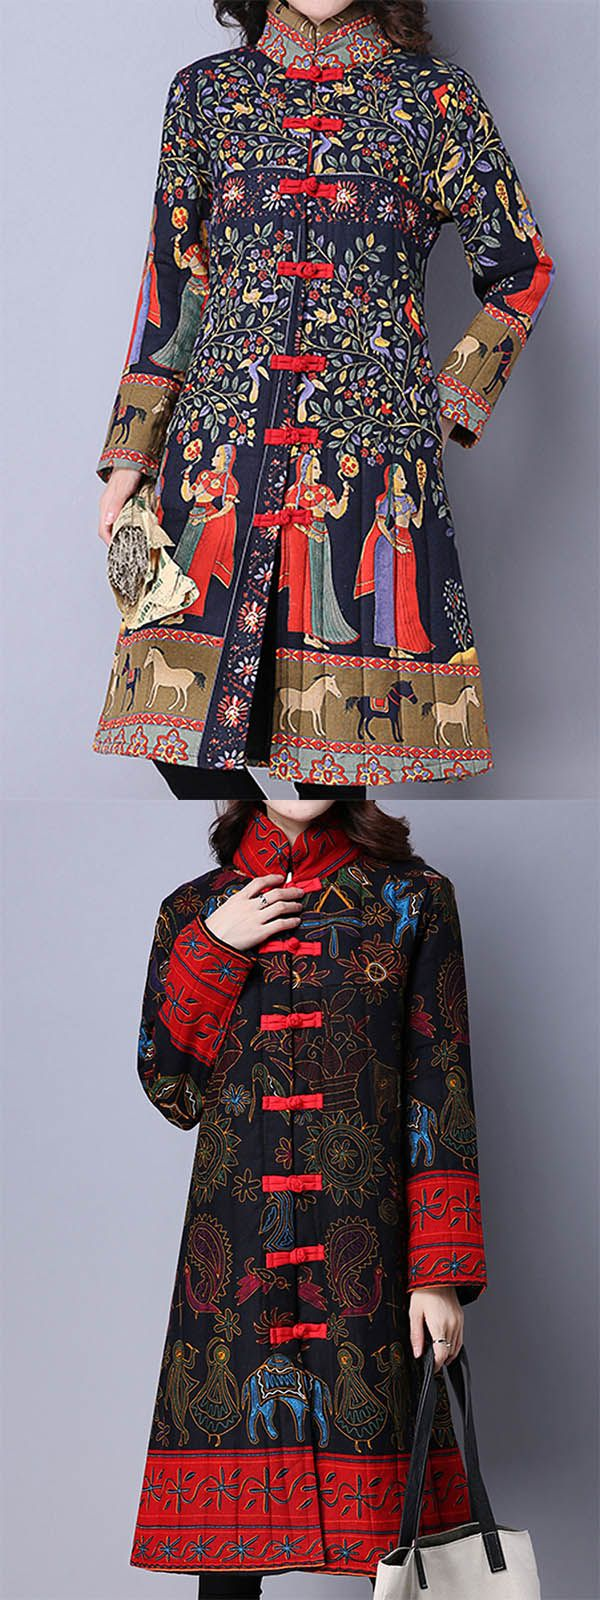 Gracila vintage women chinese frog stand collar printed long sleeve